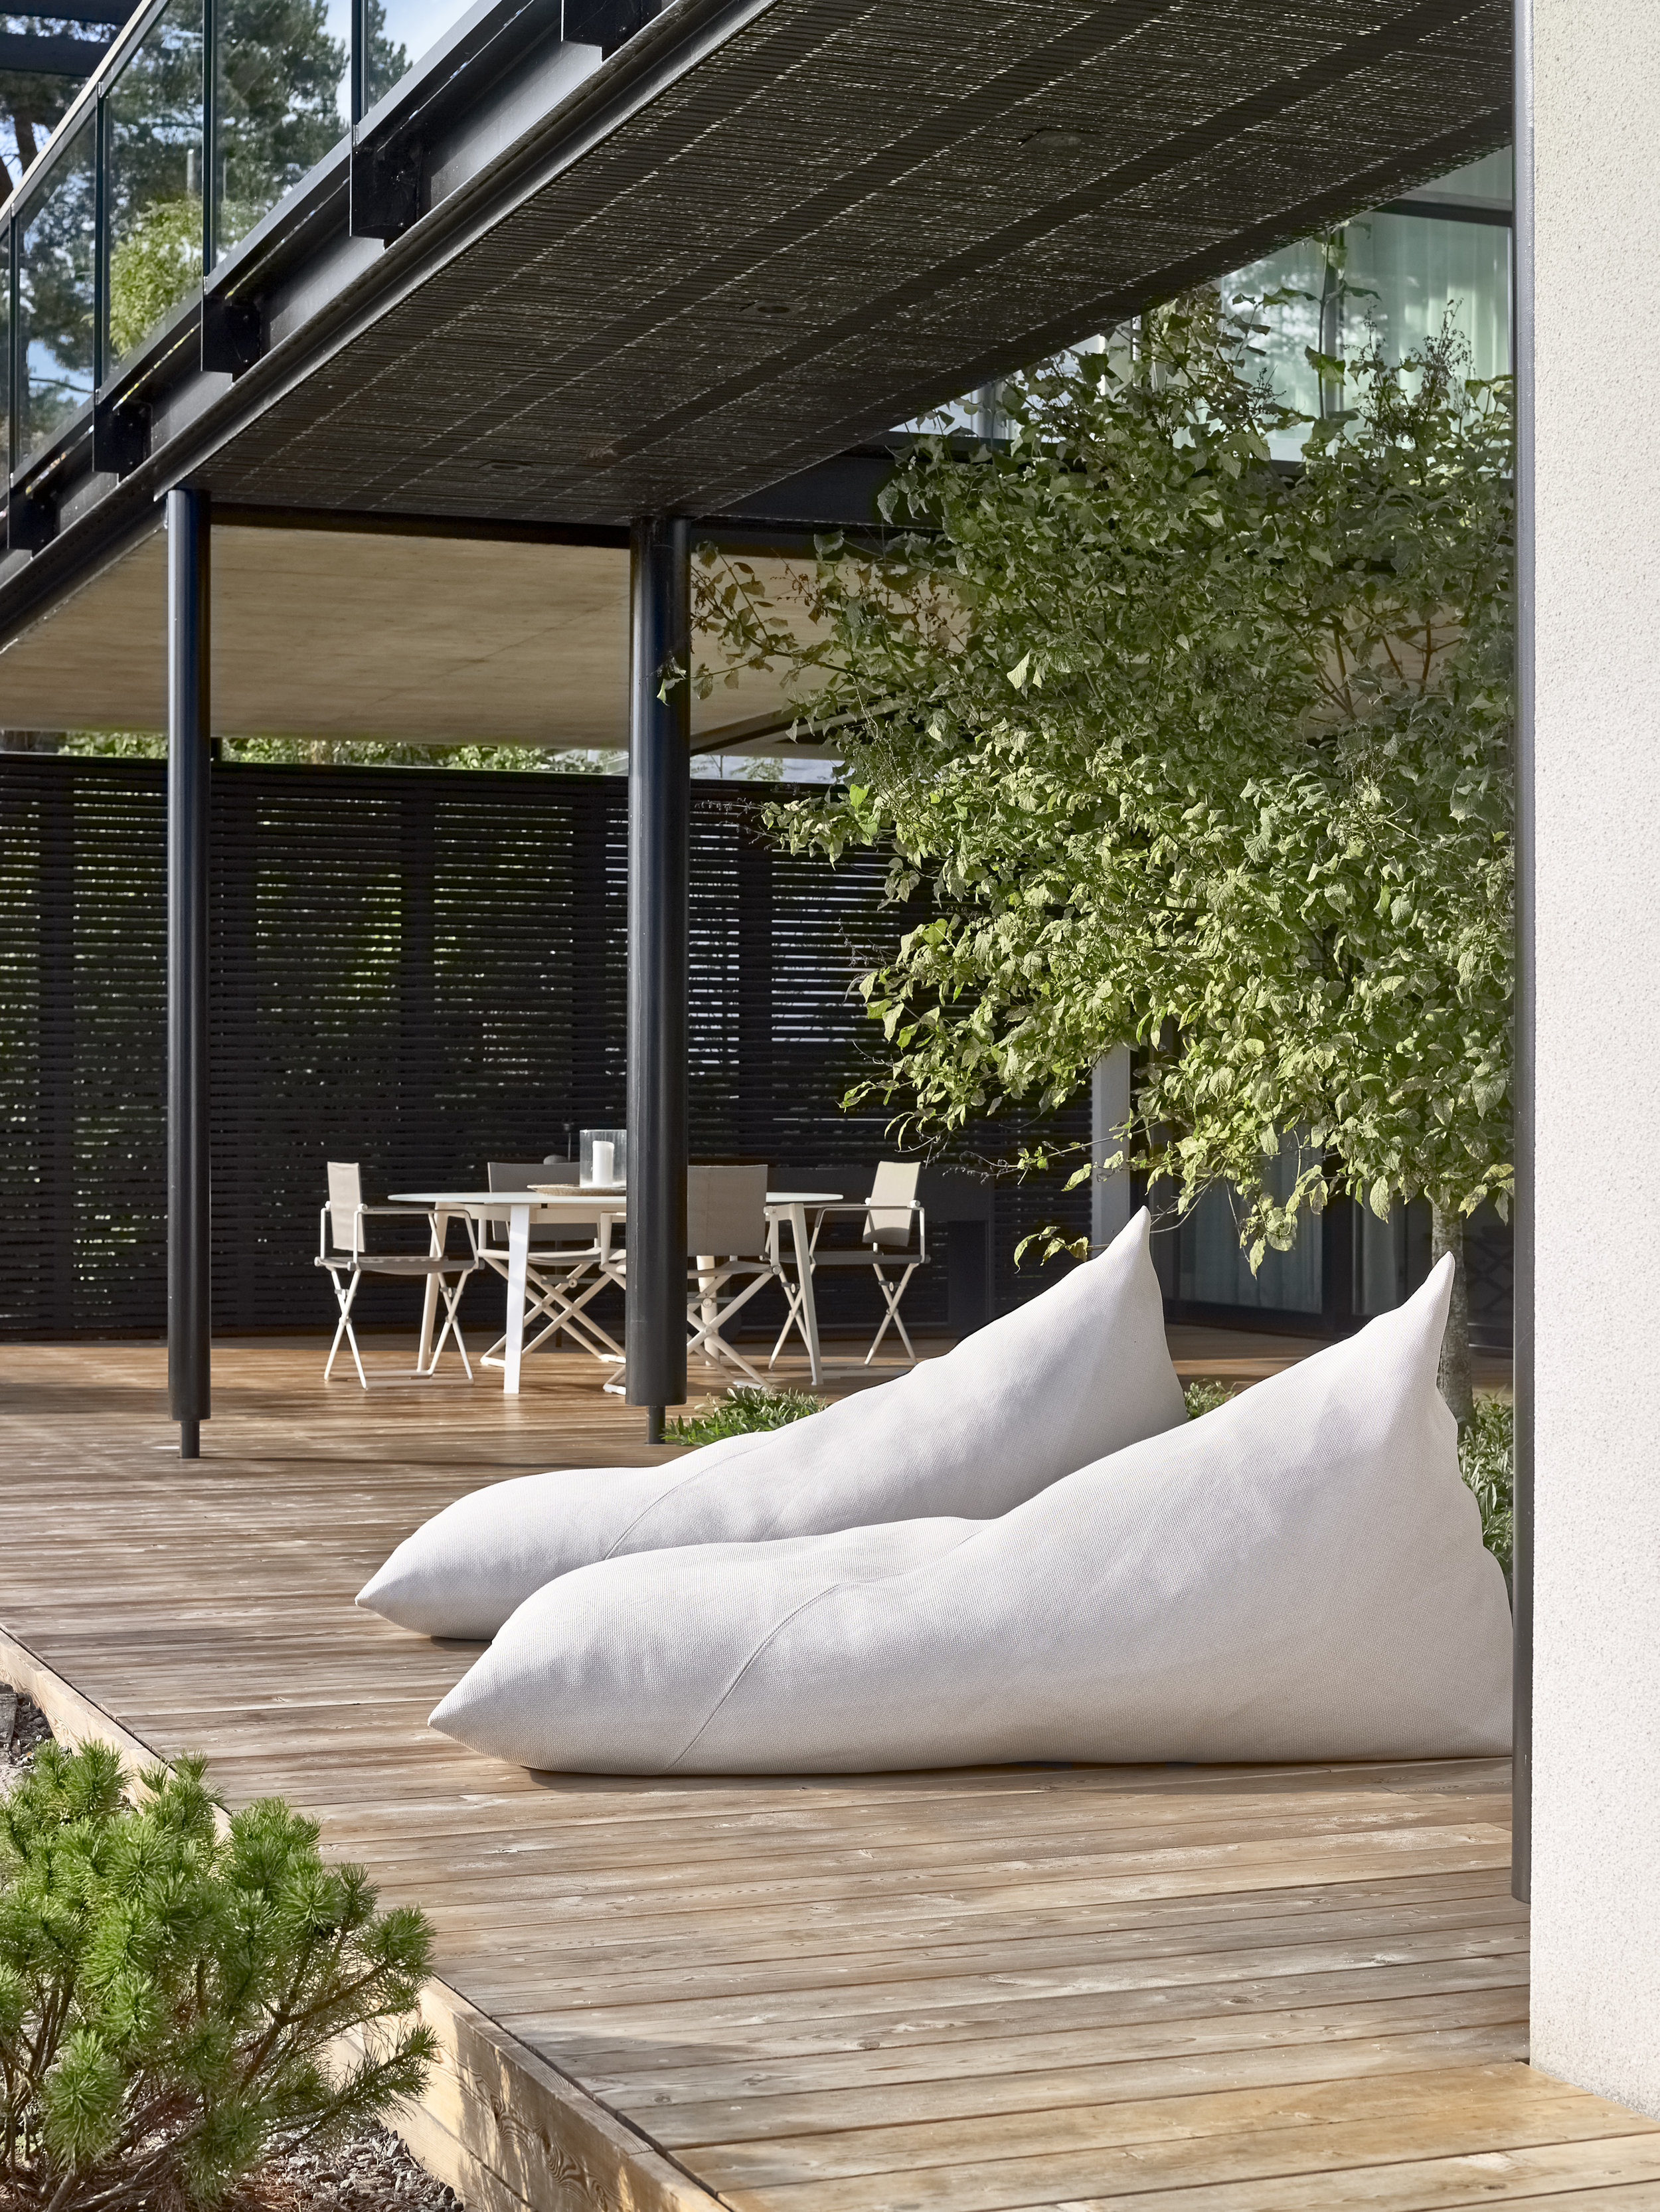 4612  Roo lounge  chairs upholstered with Saimaa outdoor fabric.